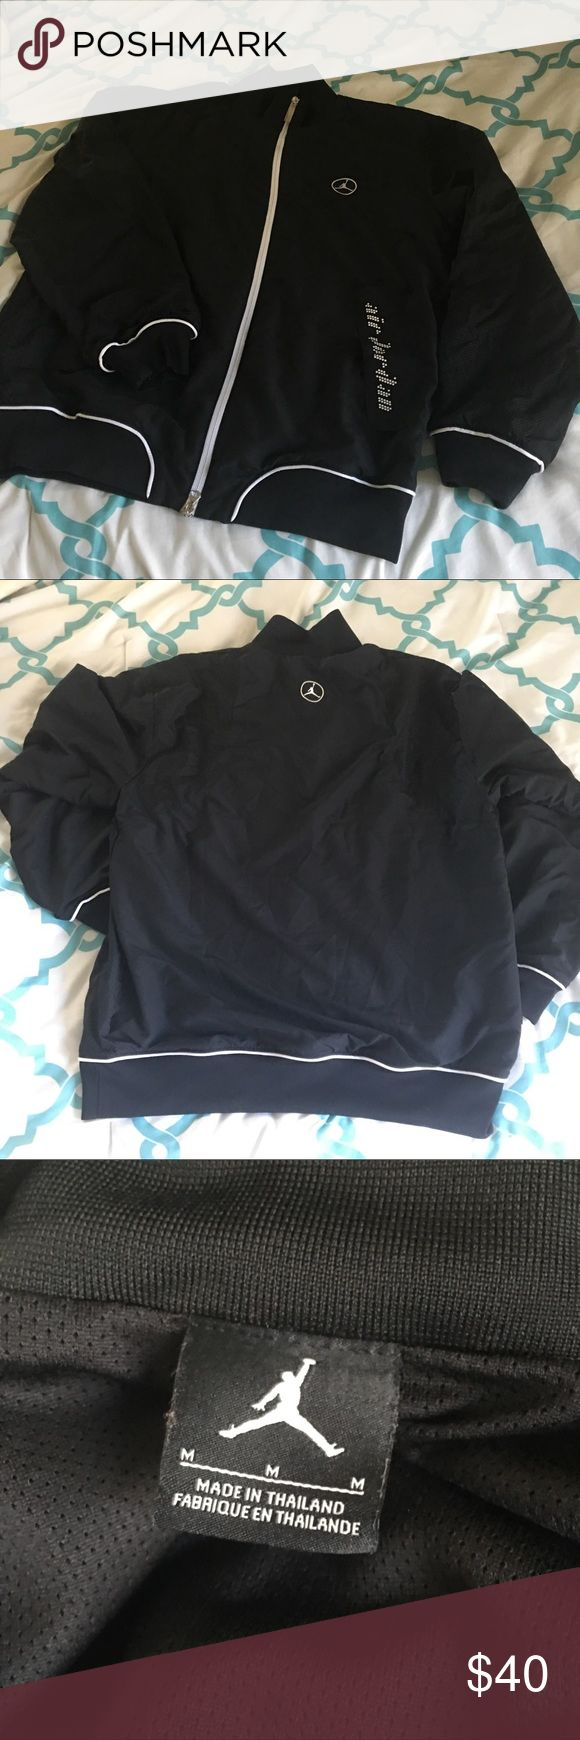 Men's Air Jordan Jacket/Coat Men's Air Jordan jacket coat in size medium. No rips or tears, double zippers - ALL zippers work perfectly! Condition new. Zippered pockets, great detail, not hooded, mesh detail. Air Jordan Jackets & Coats